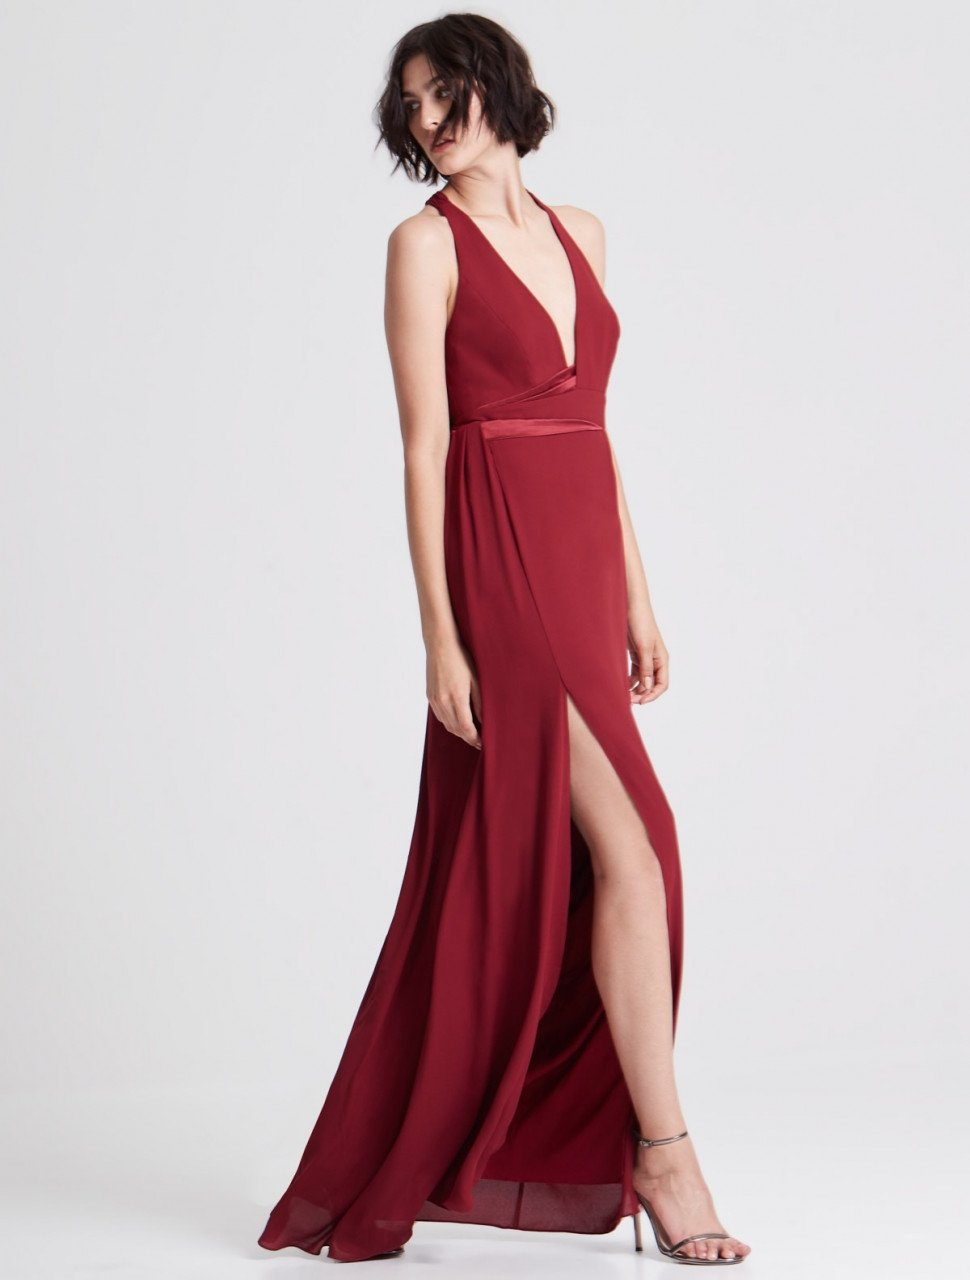 GOWN WITH CONTRAST SATIN SASH